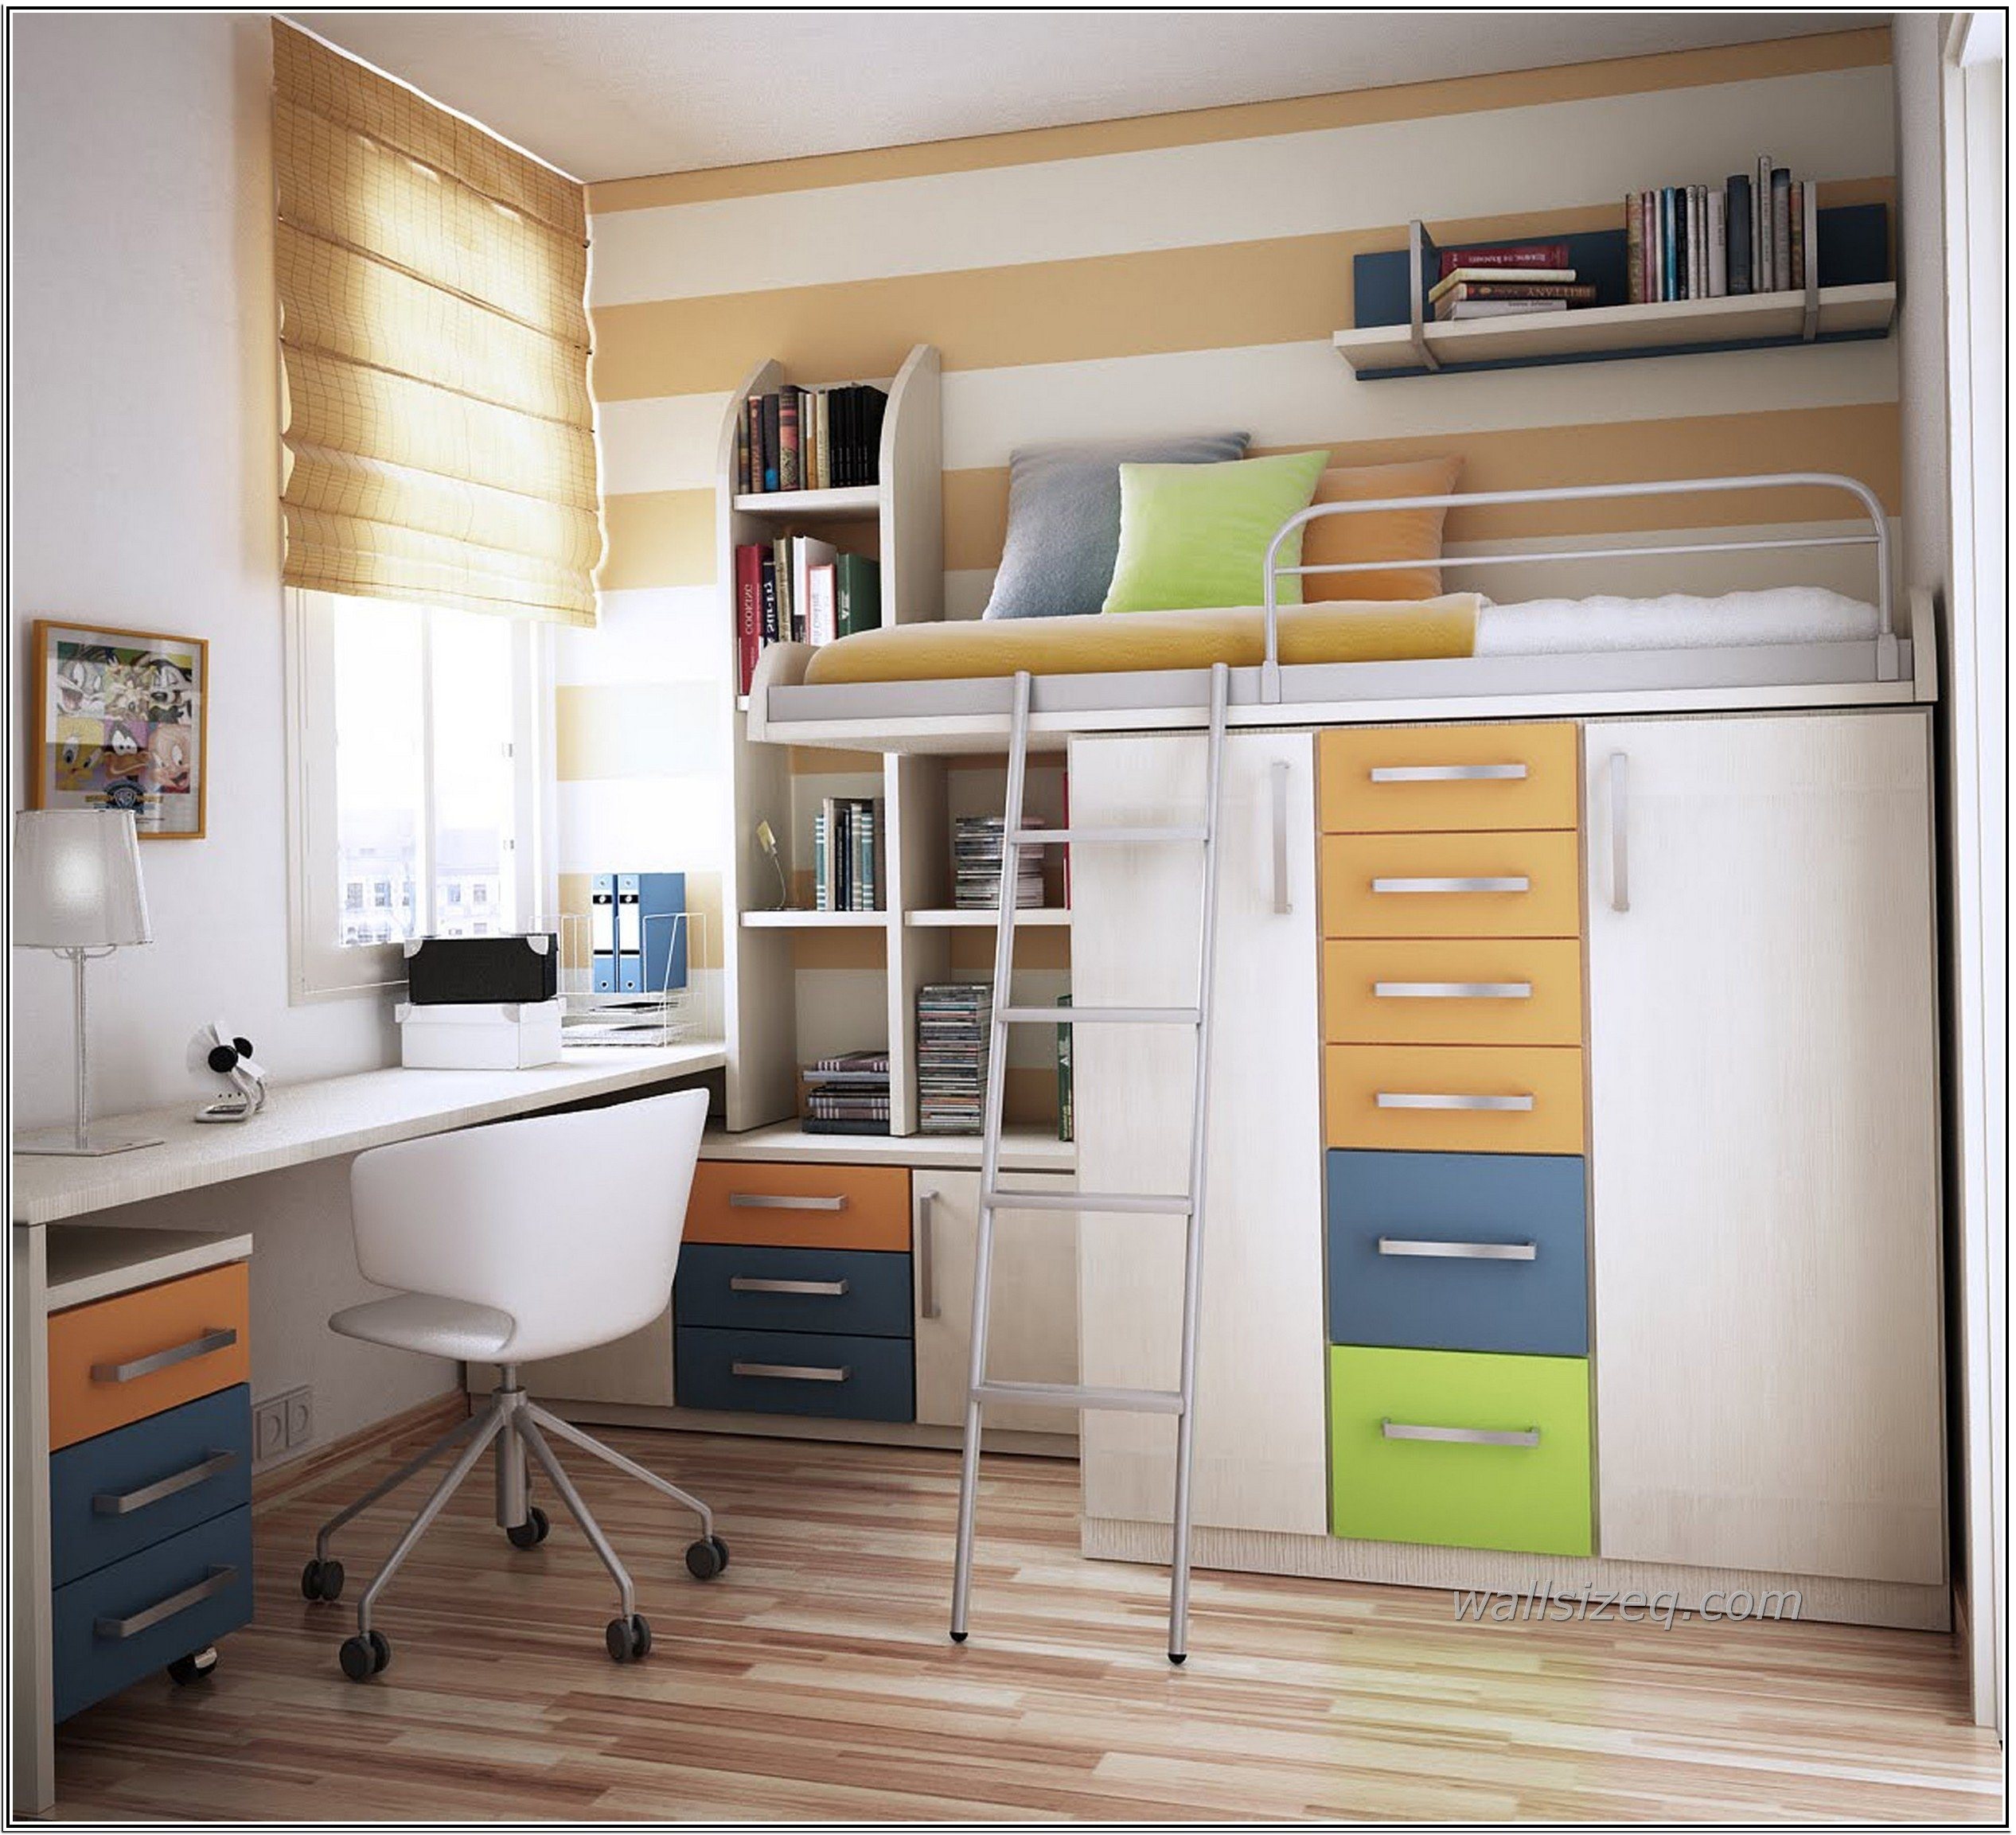 10 Best Space Saving Ideas For Apartments store ideas for small apartment teenage bedroom with loft bed and